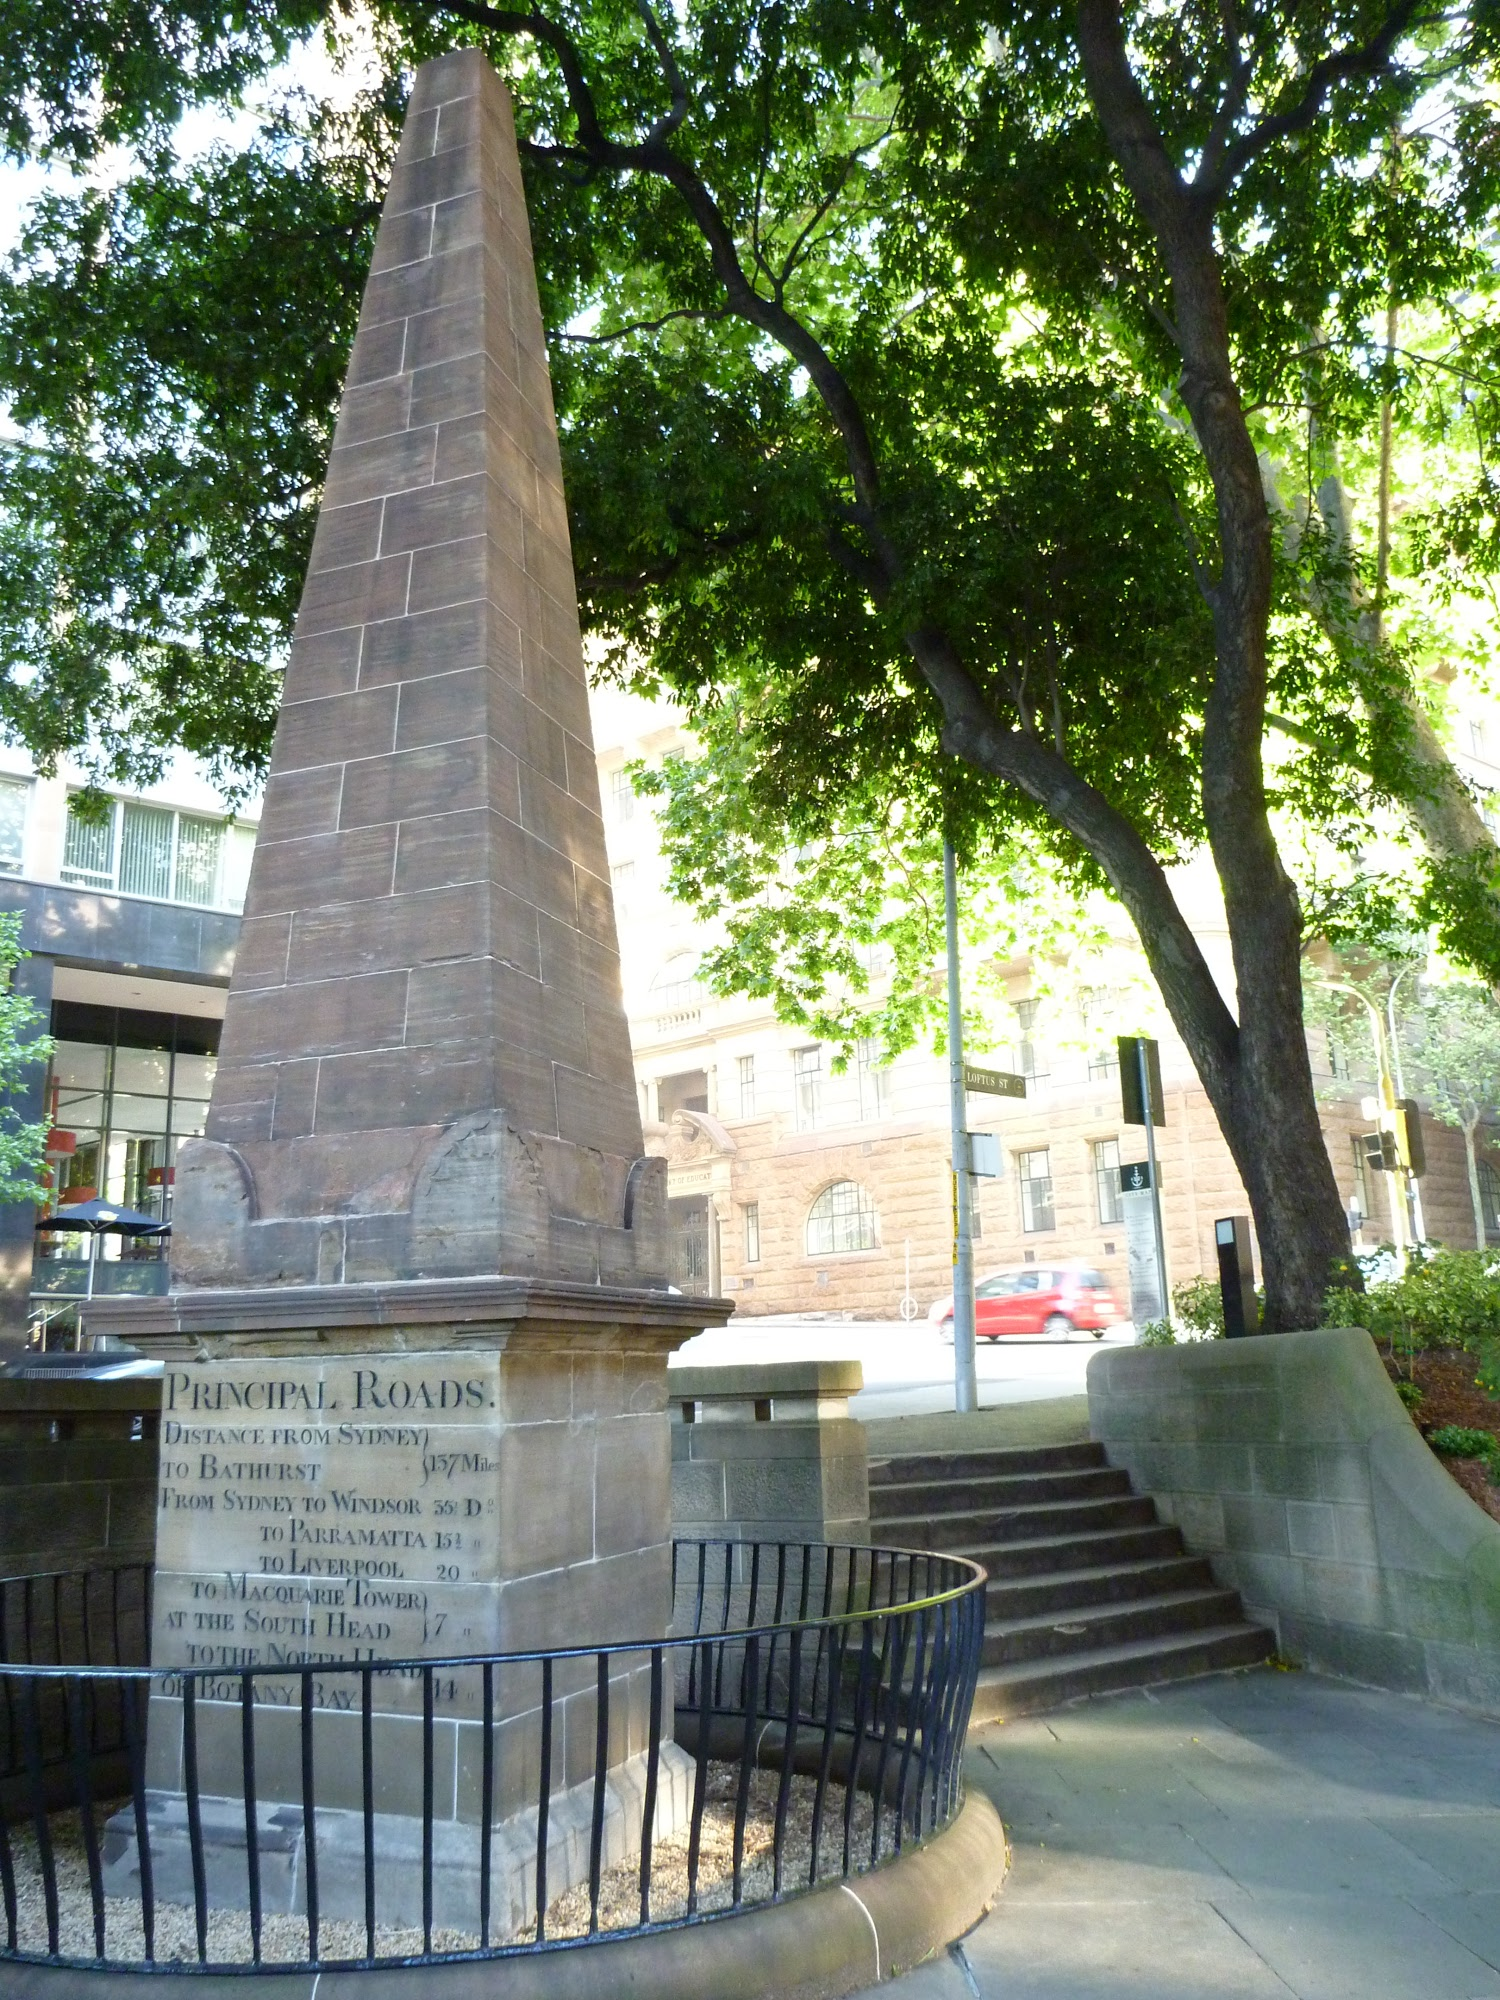 MM_20101021_203012_Macquarie Place Obelisk